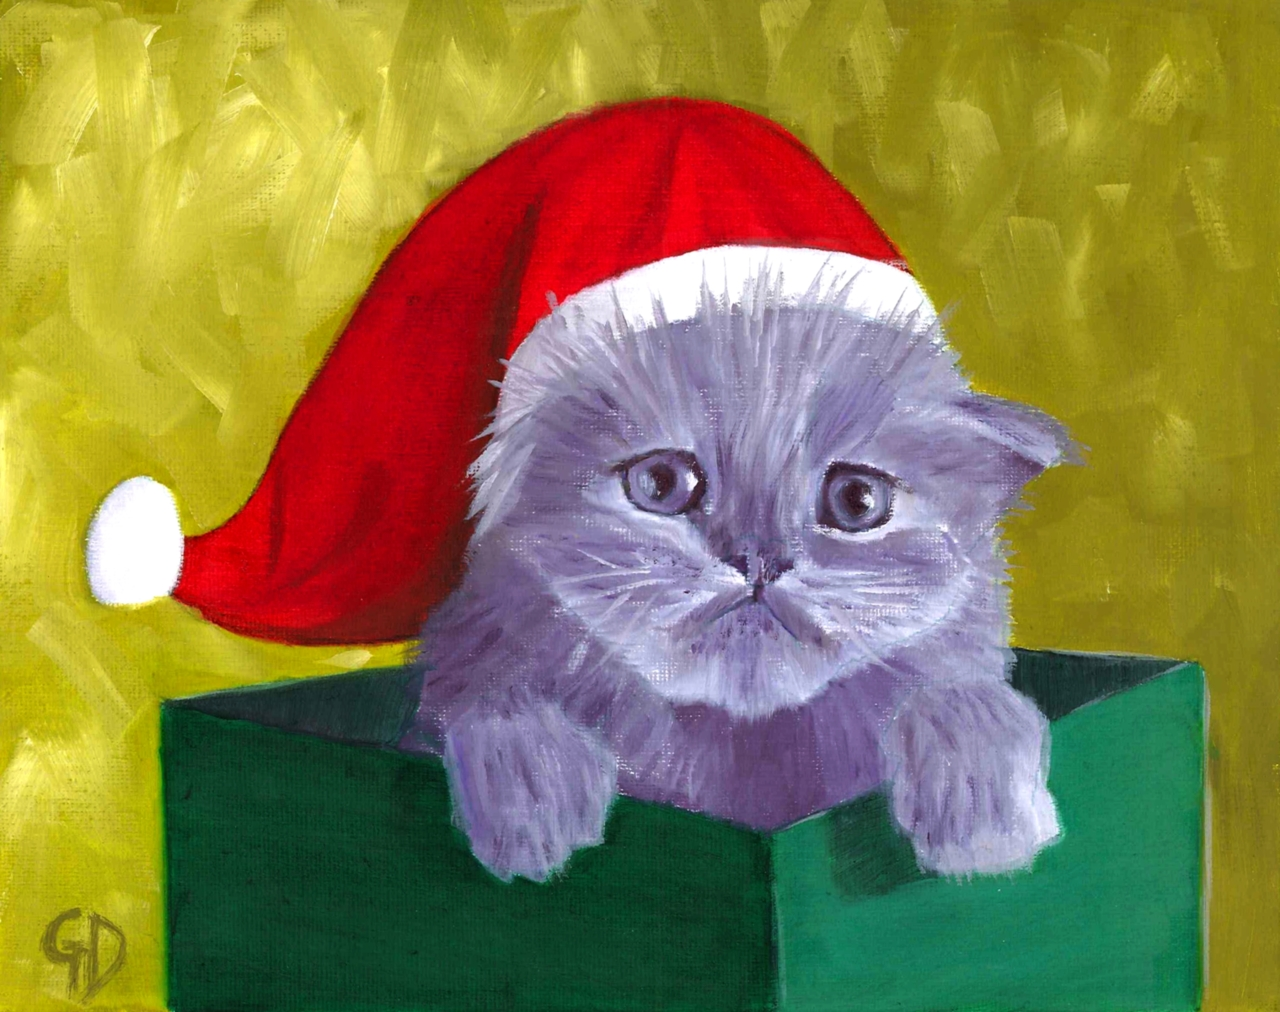 Christmas Cat.jpg - Christmas Kitty Oil on canvas - 20 x 25 cm Scanned 22 August 2012